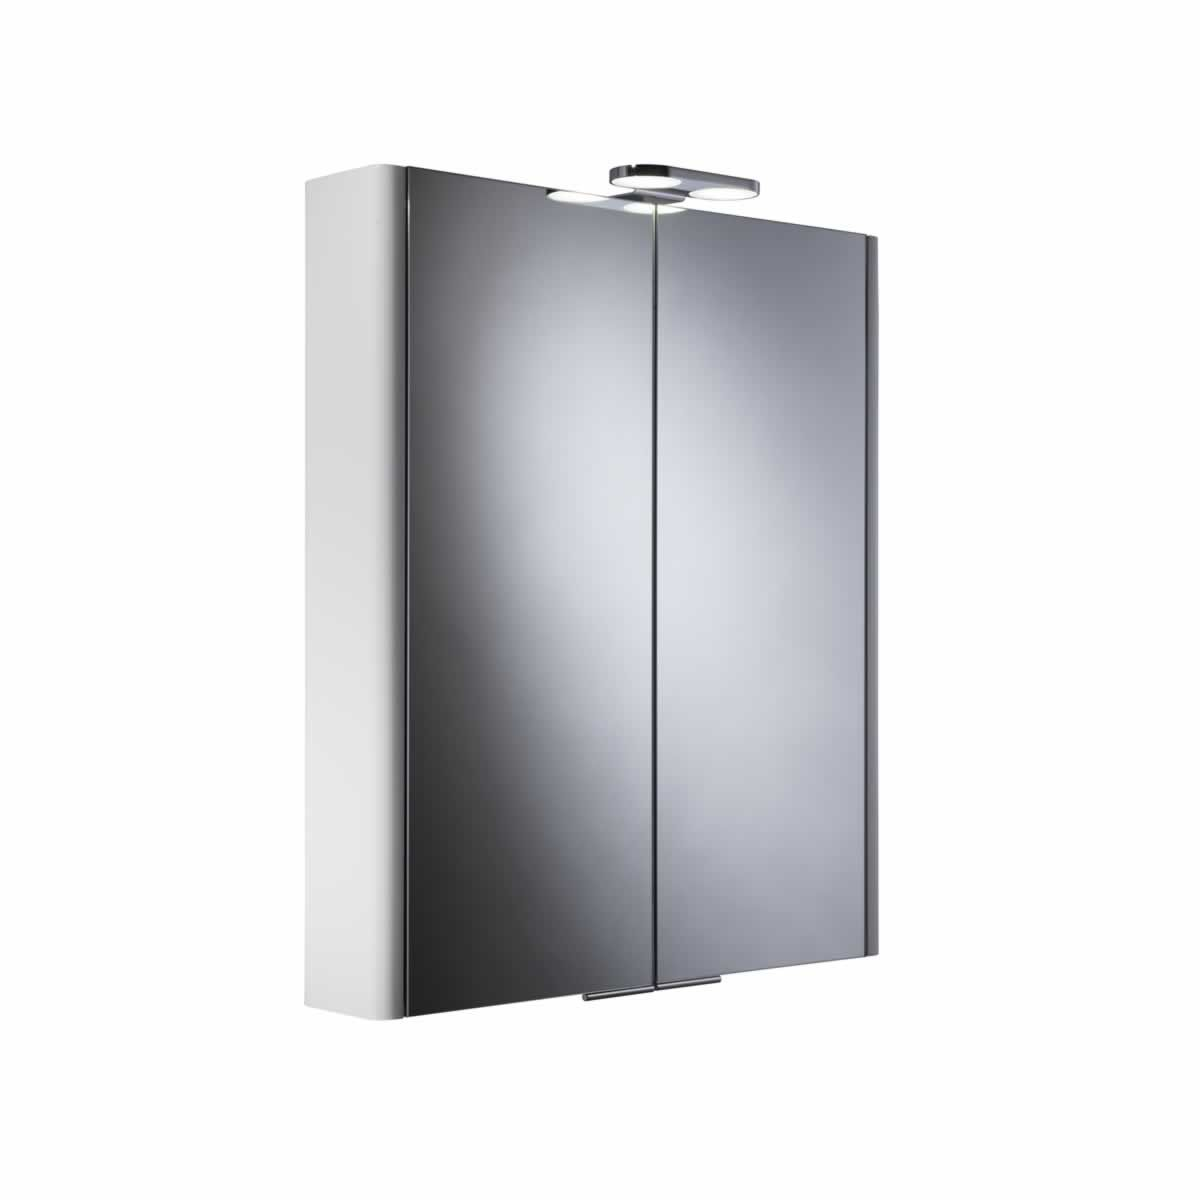 Roper rhodes entity 2 door mirror cabinet uk bathrooms for Mirror meaning